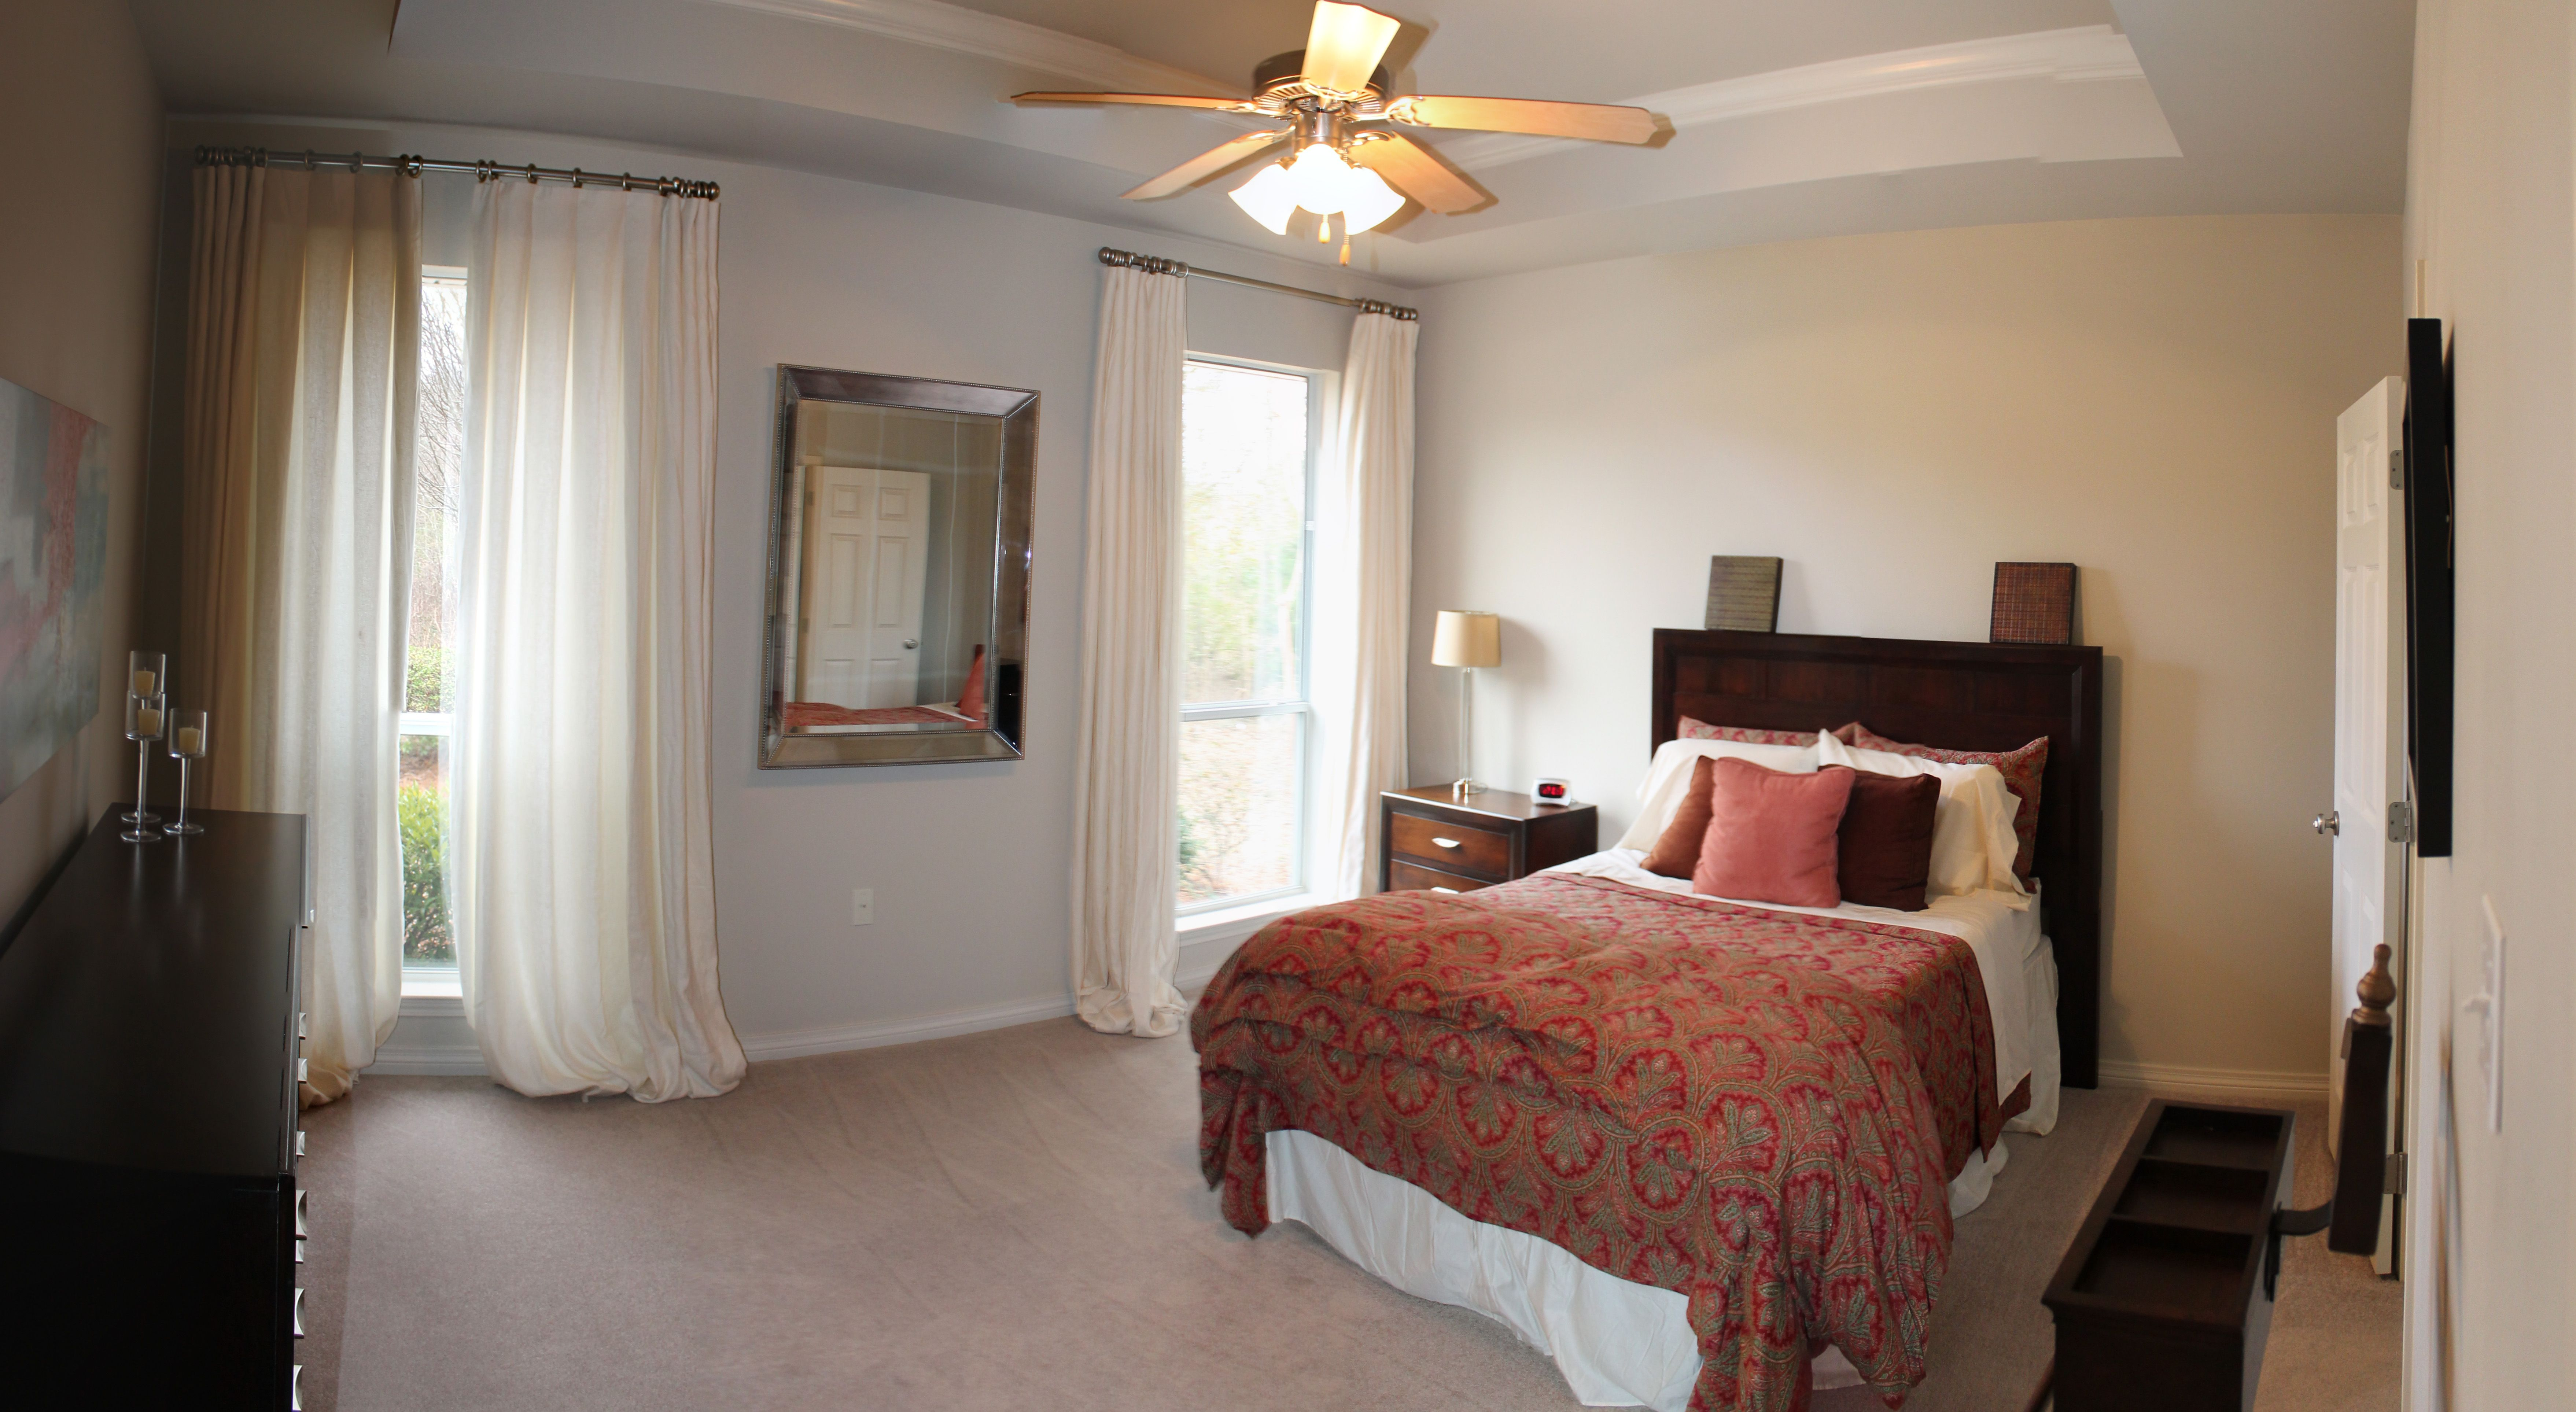 Master Bedroom with Trey Ceiling House